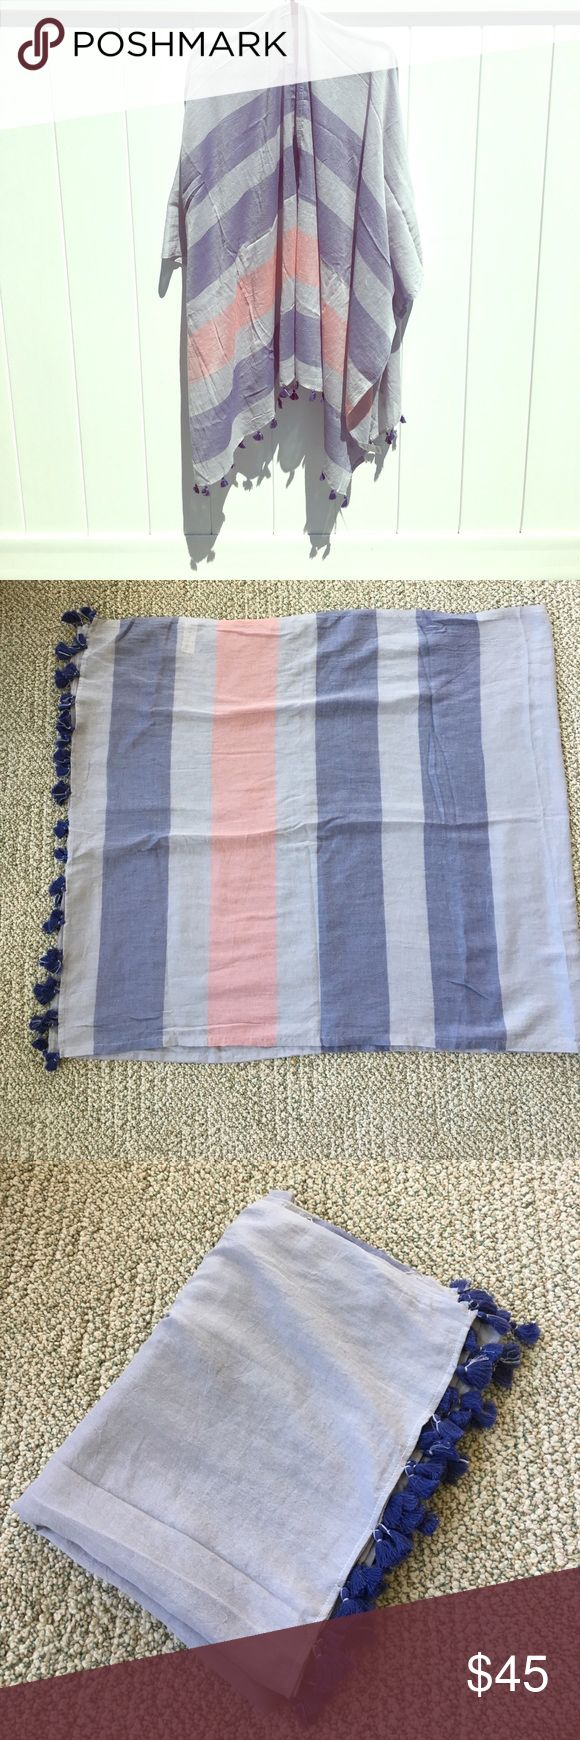 Lululemon Scarf/Shall Brand new, never been worn! lululemon athletica Accessories Scarves & Wraps